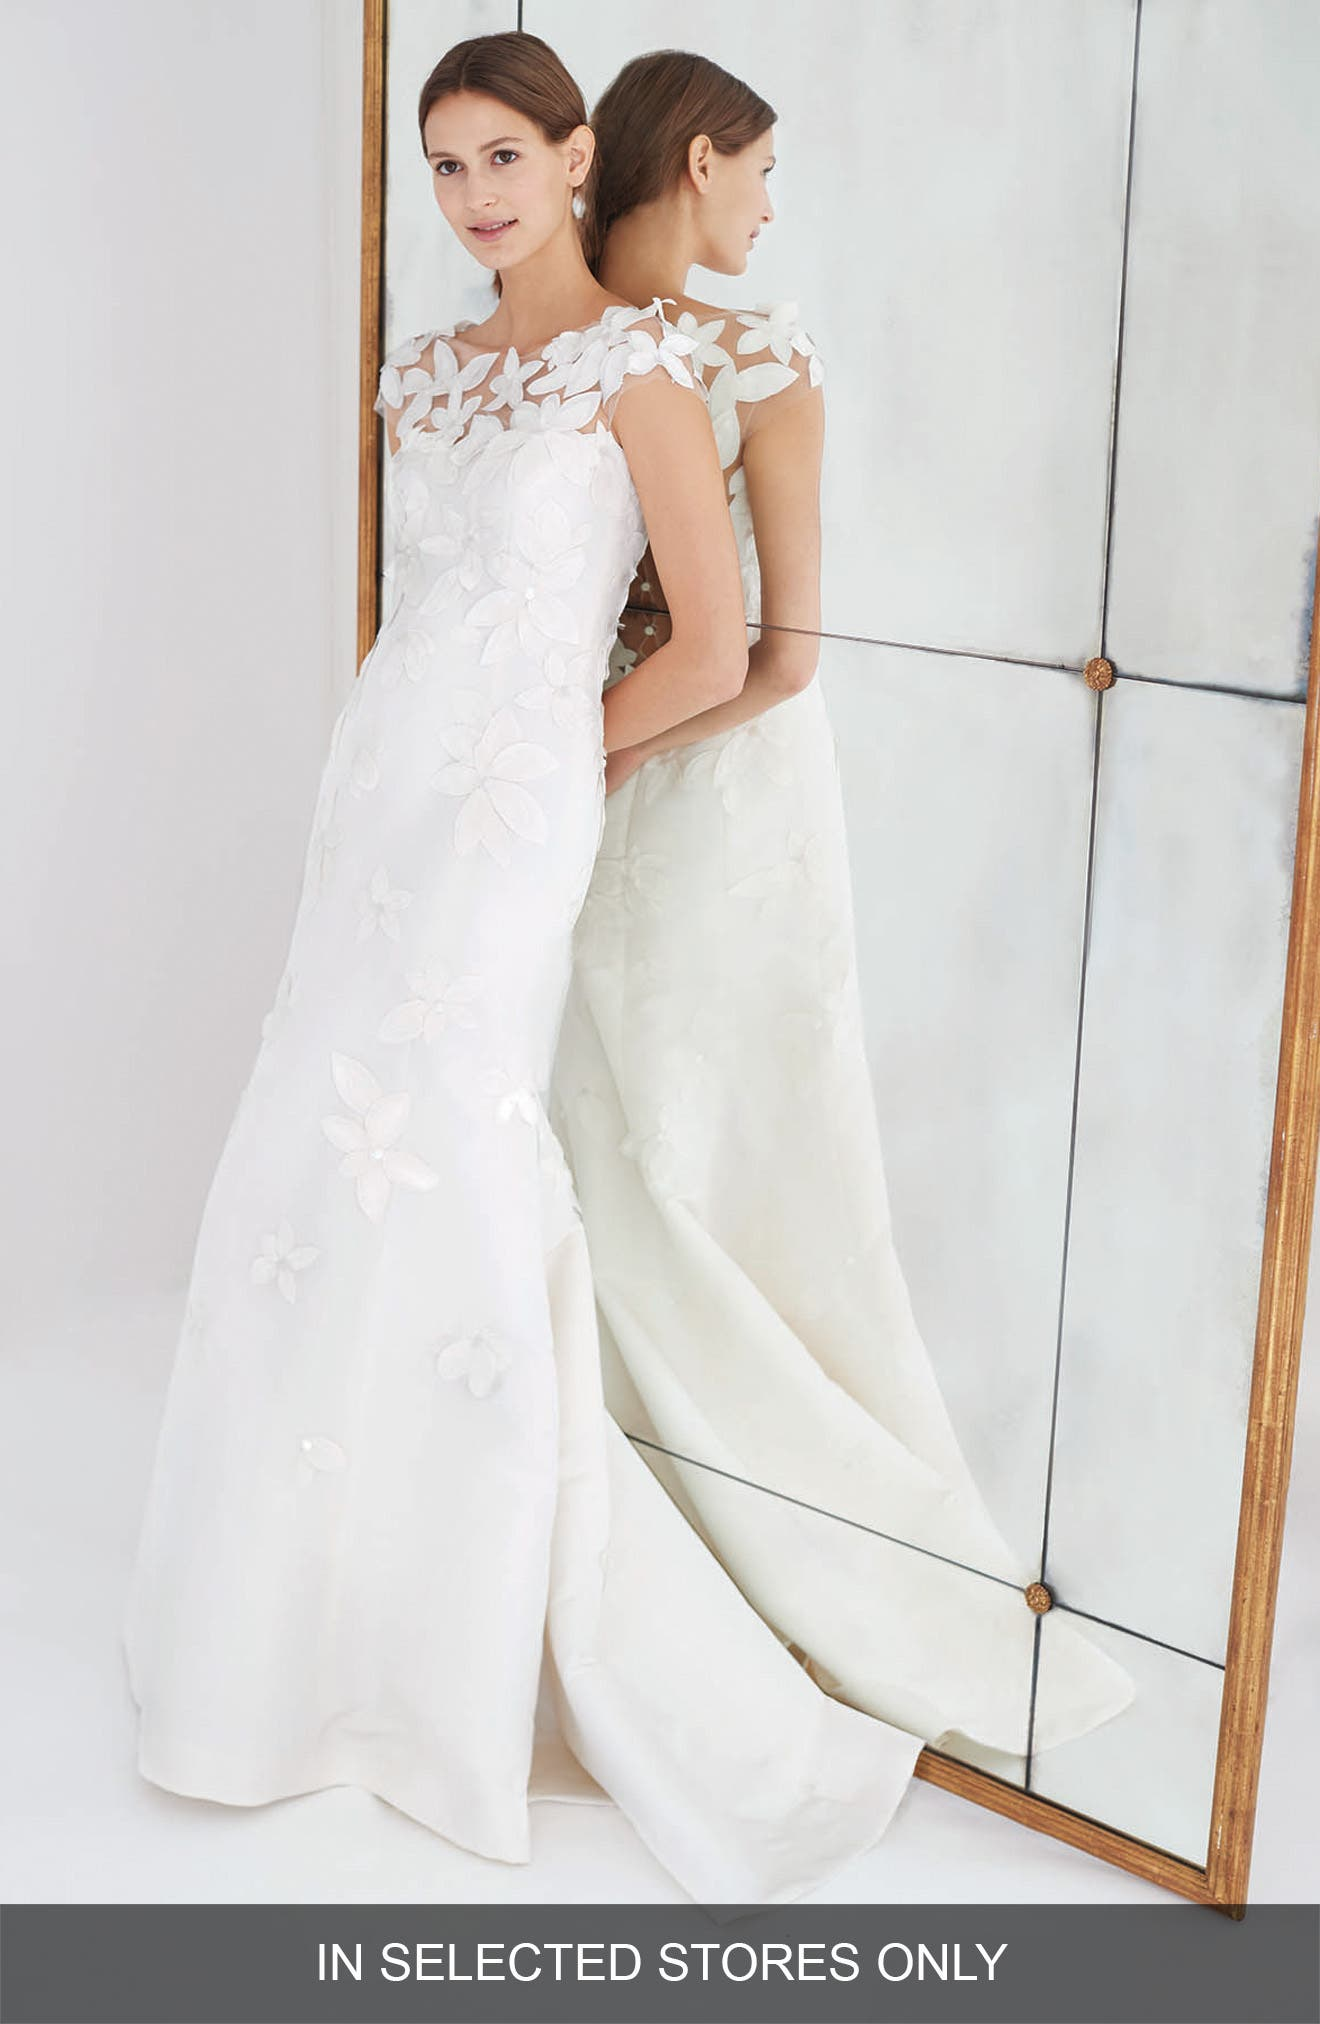 Alternate Image 1 Selected - Carolina Herrera Gretchen Embroidered Faille Trumpet Gown